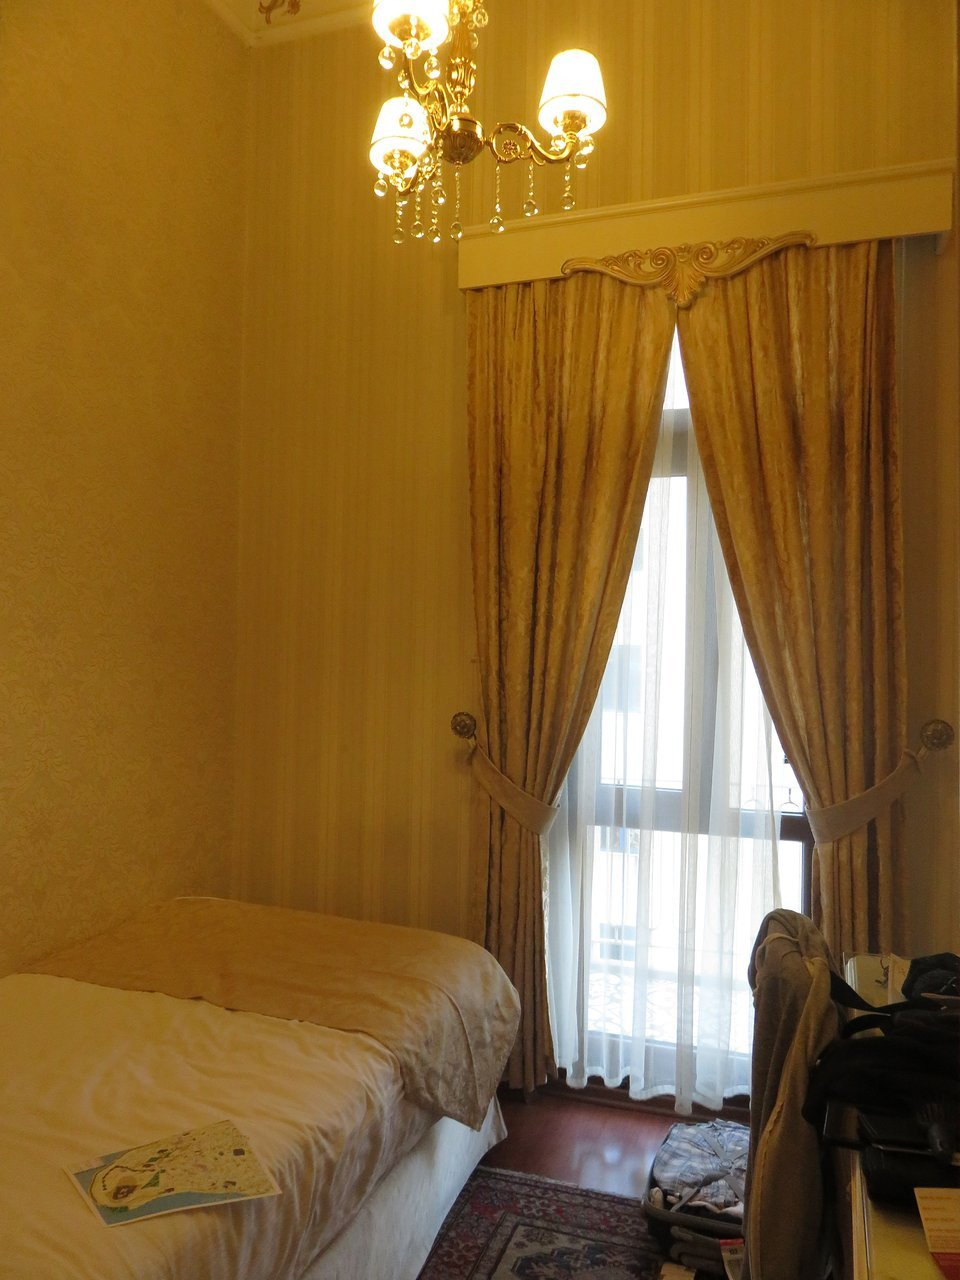 Western Curtains for Bedroom Luxury Enderun Hotel istanbul Rooms & Reviews Tripadvisor